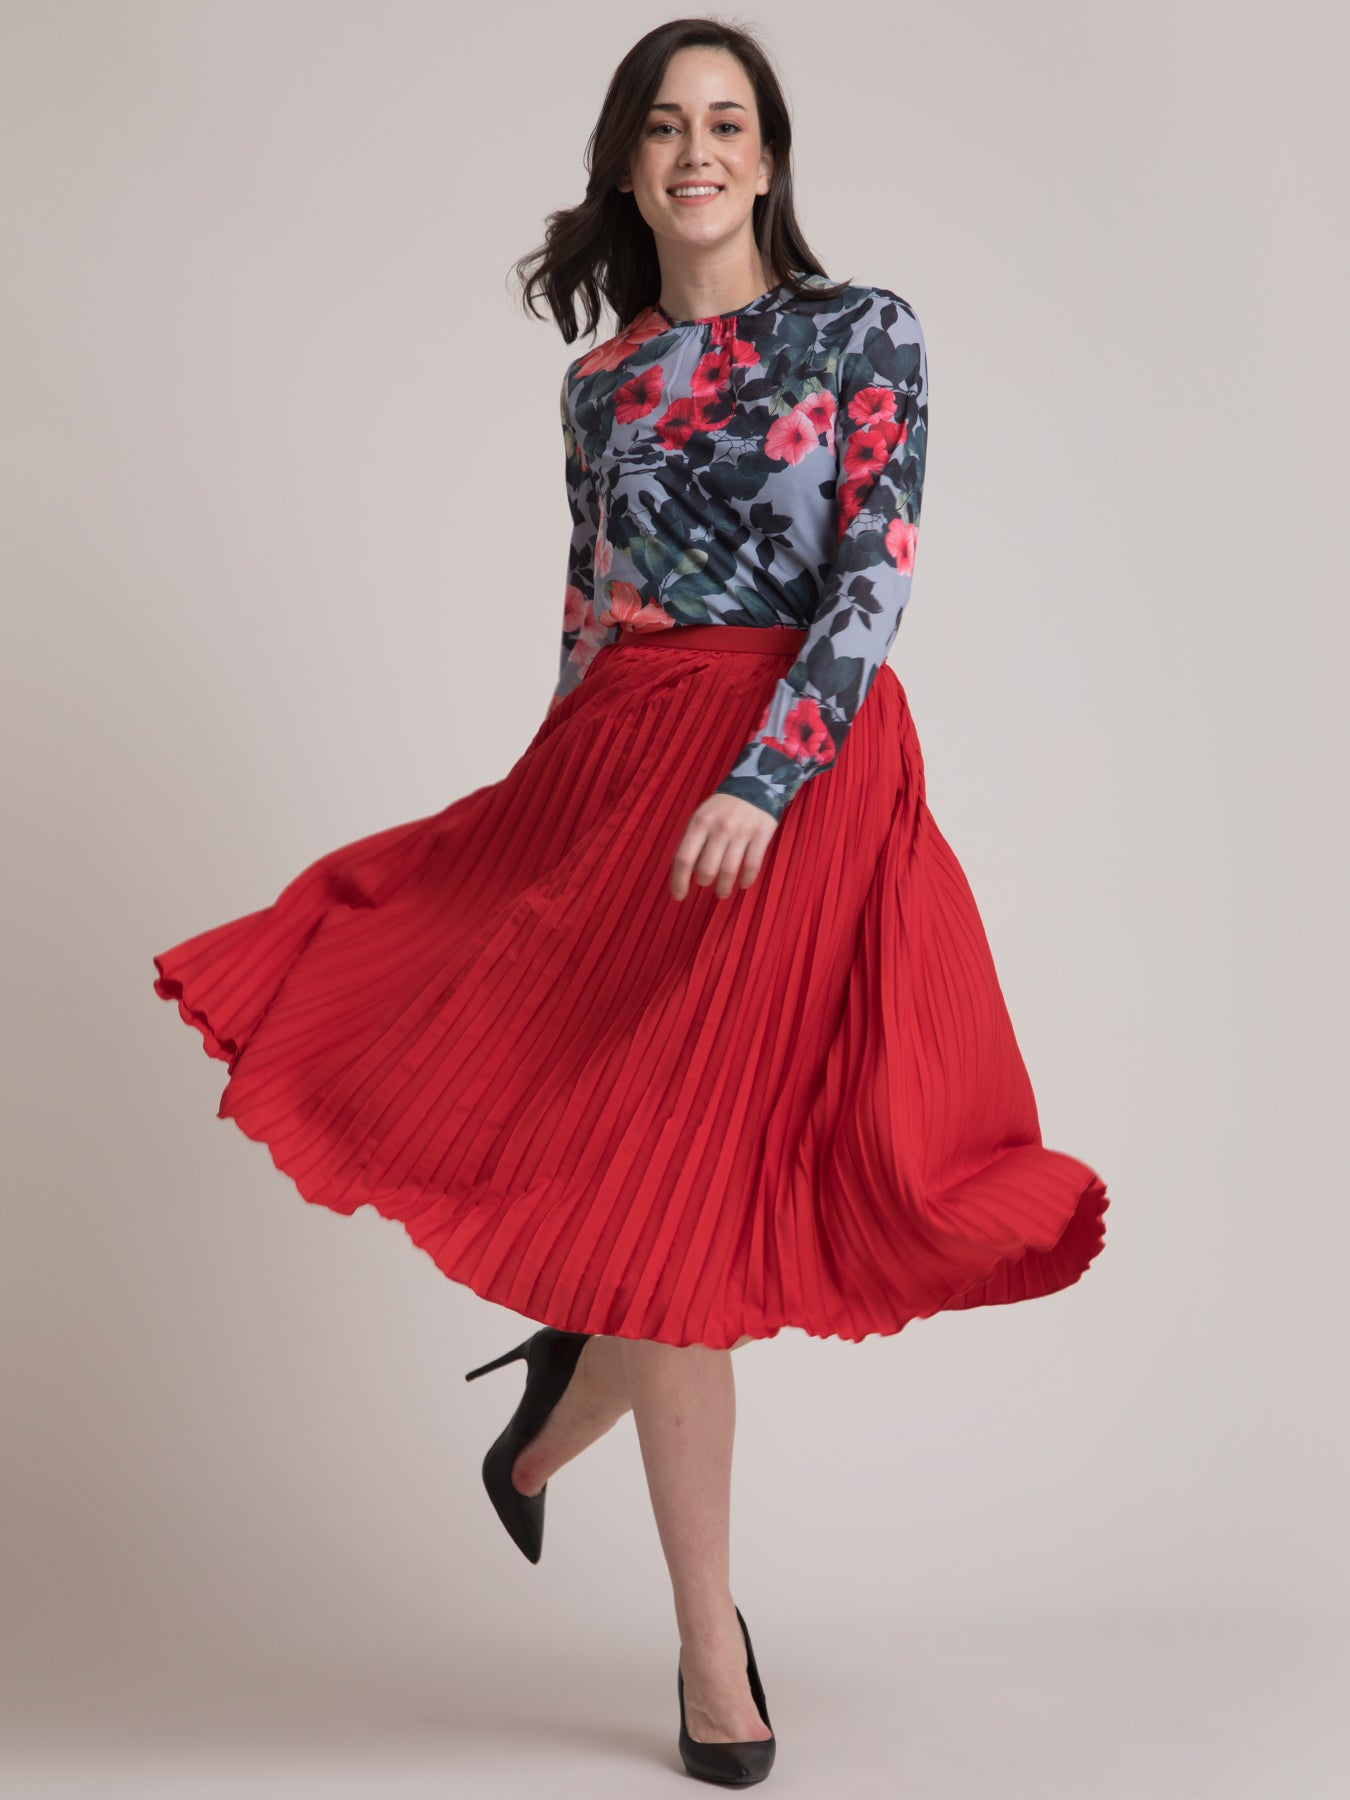 Floral Top and Pleated Skirt Co-ord - Grey and Red